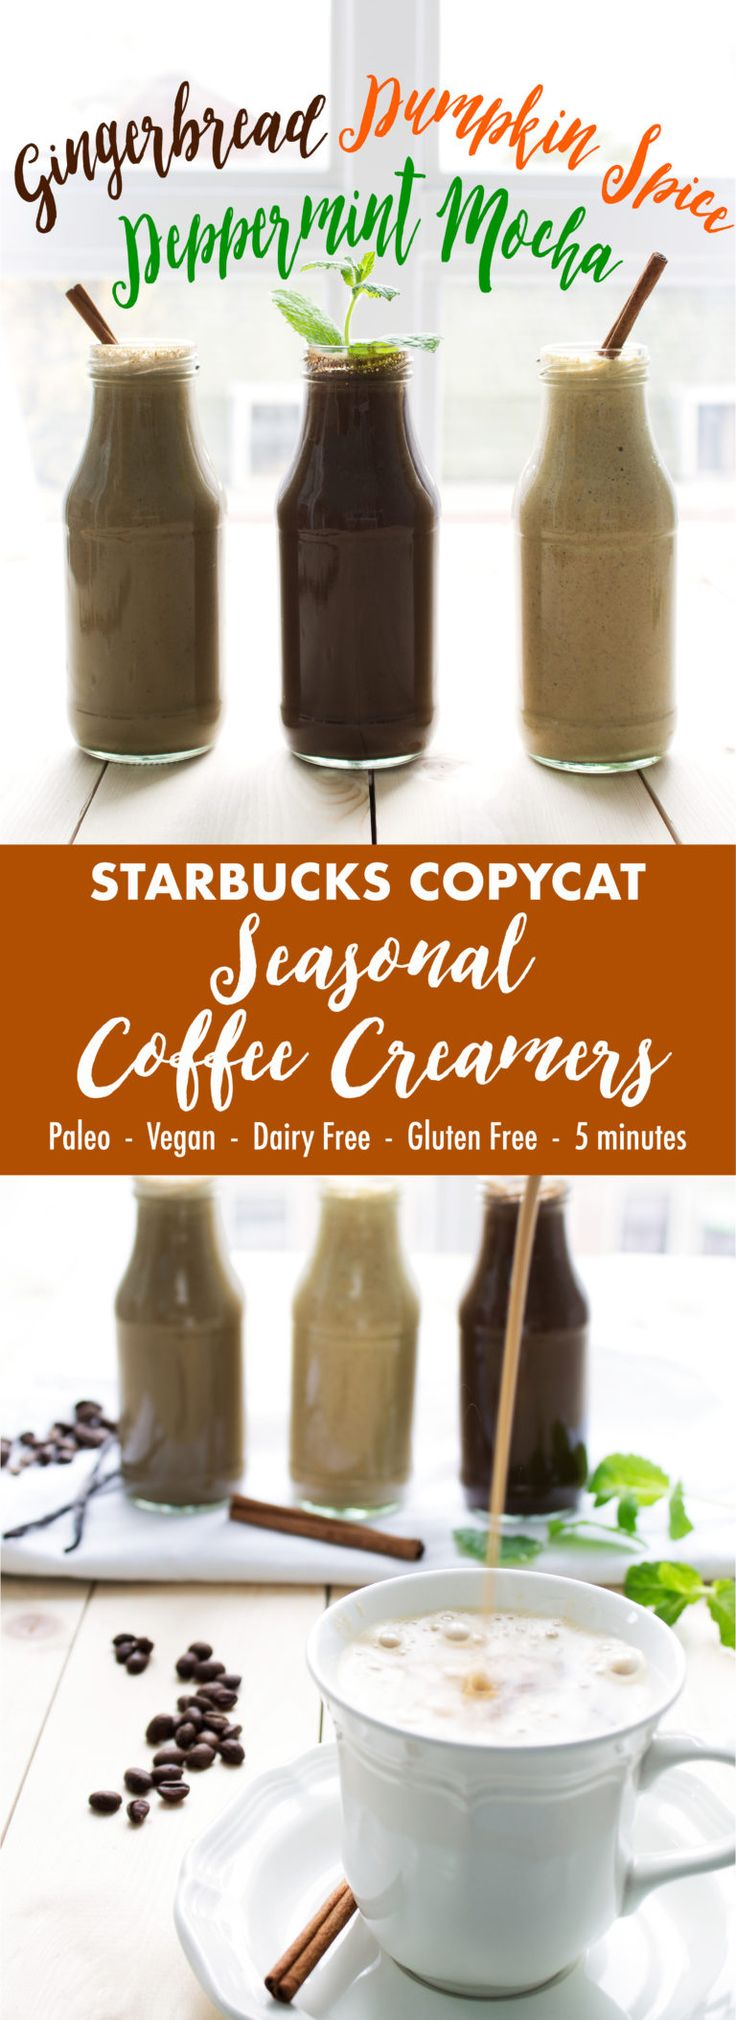 Starbucks Copycat Seasonal Coffee Creamers